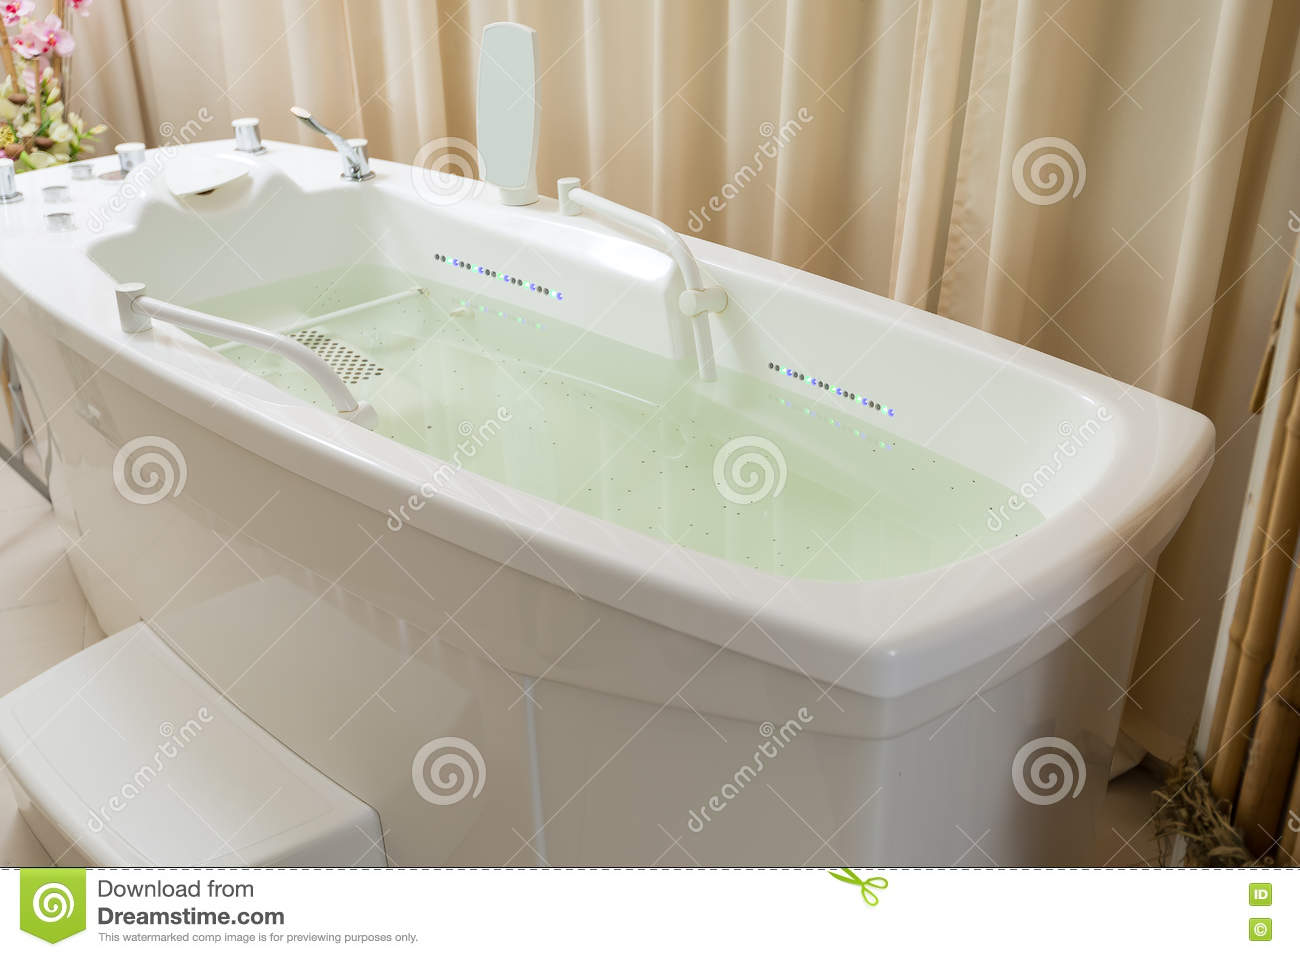 Empty Jacuzzi, Tub Filled With Water In The Spa Stock Photo - Image ...